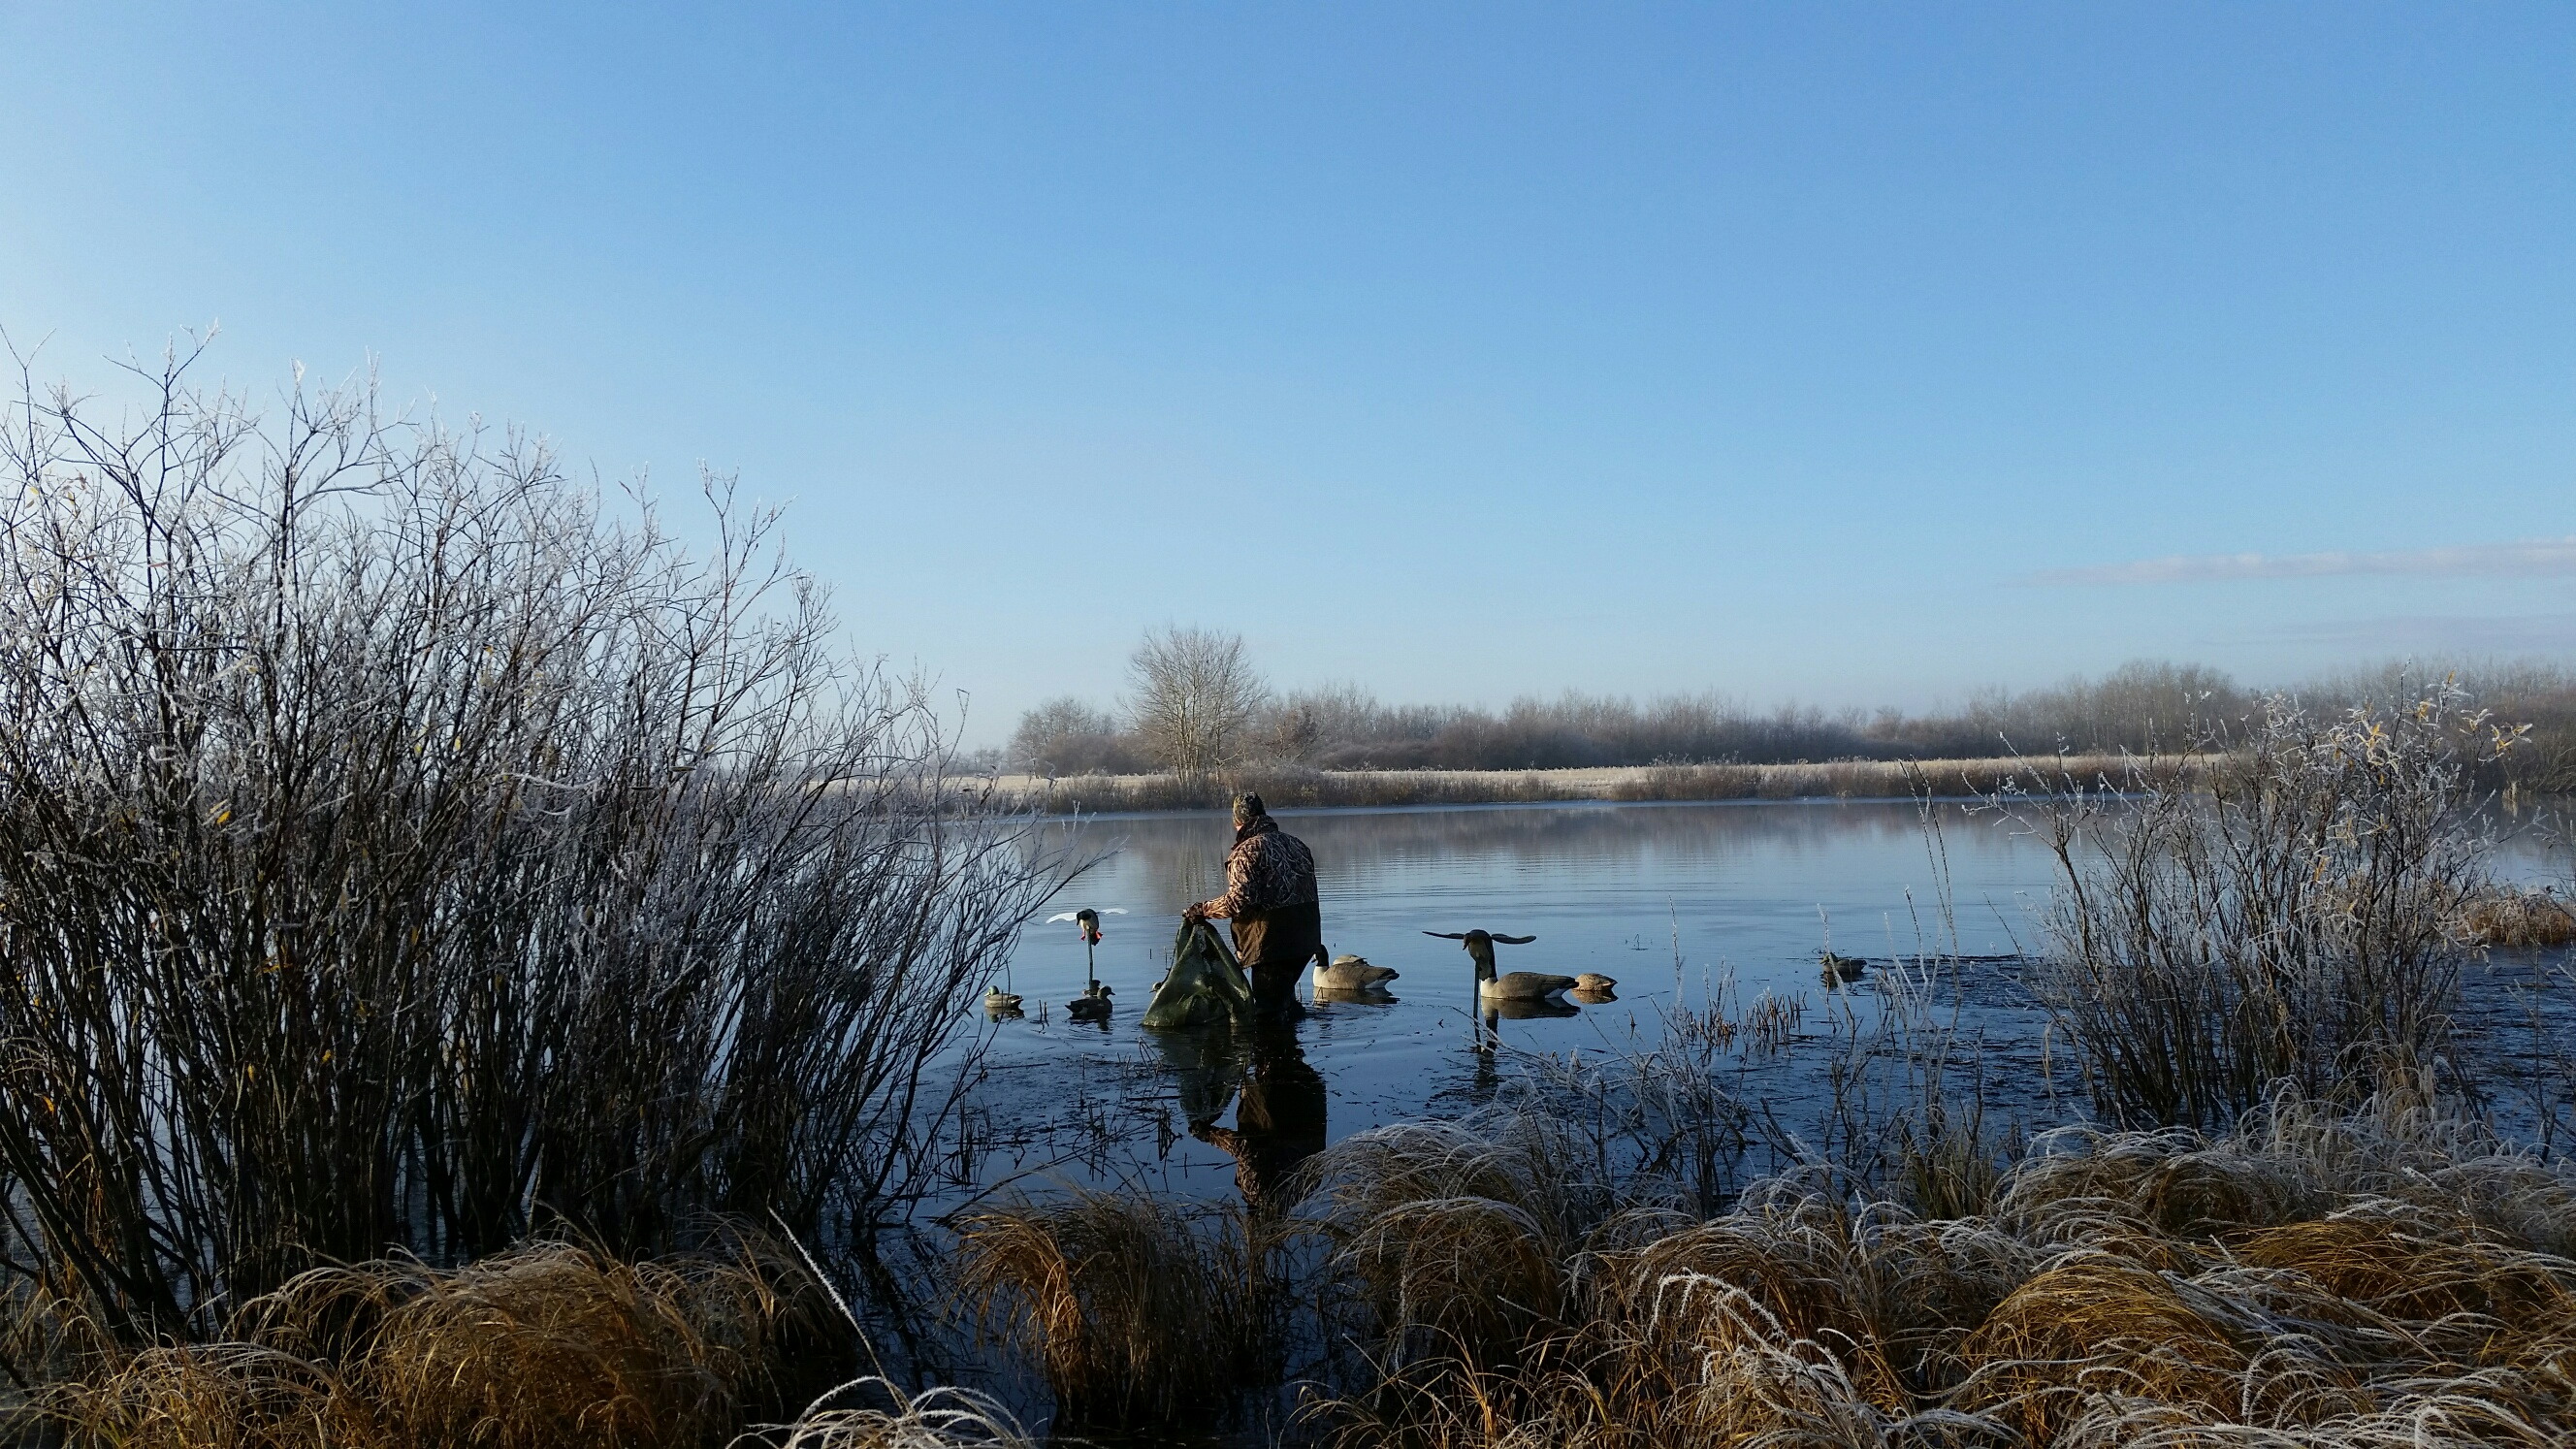 Barcley collecting the decoys